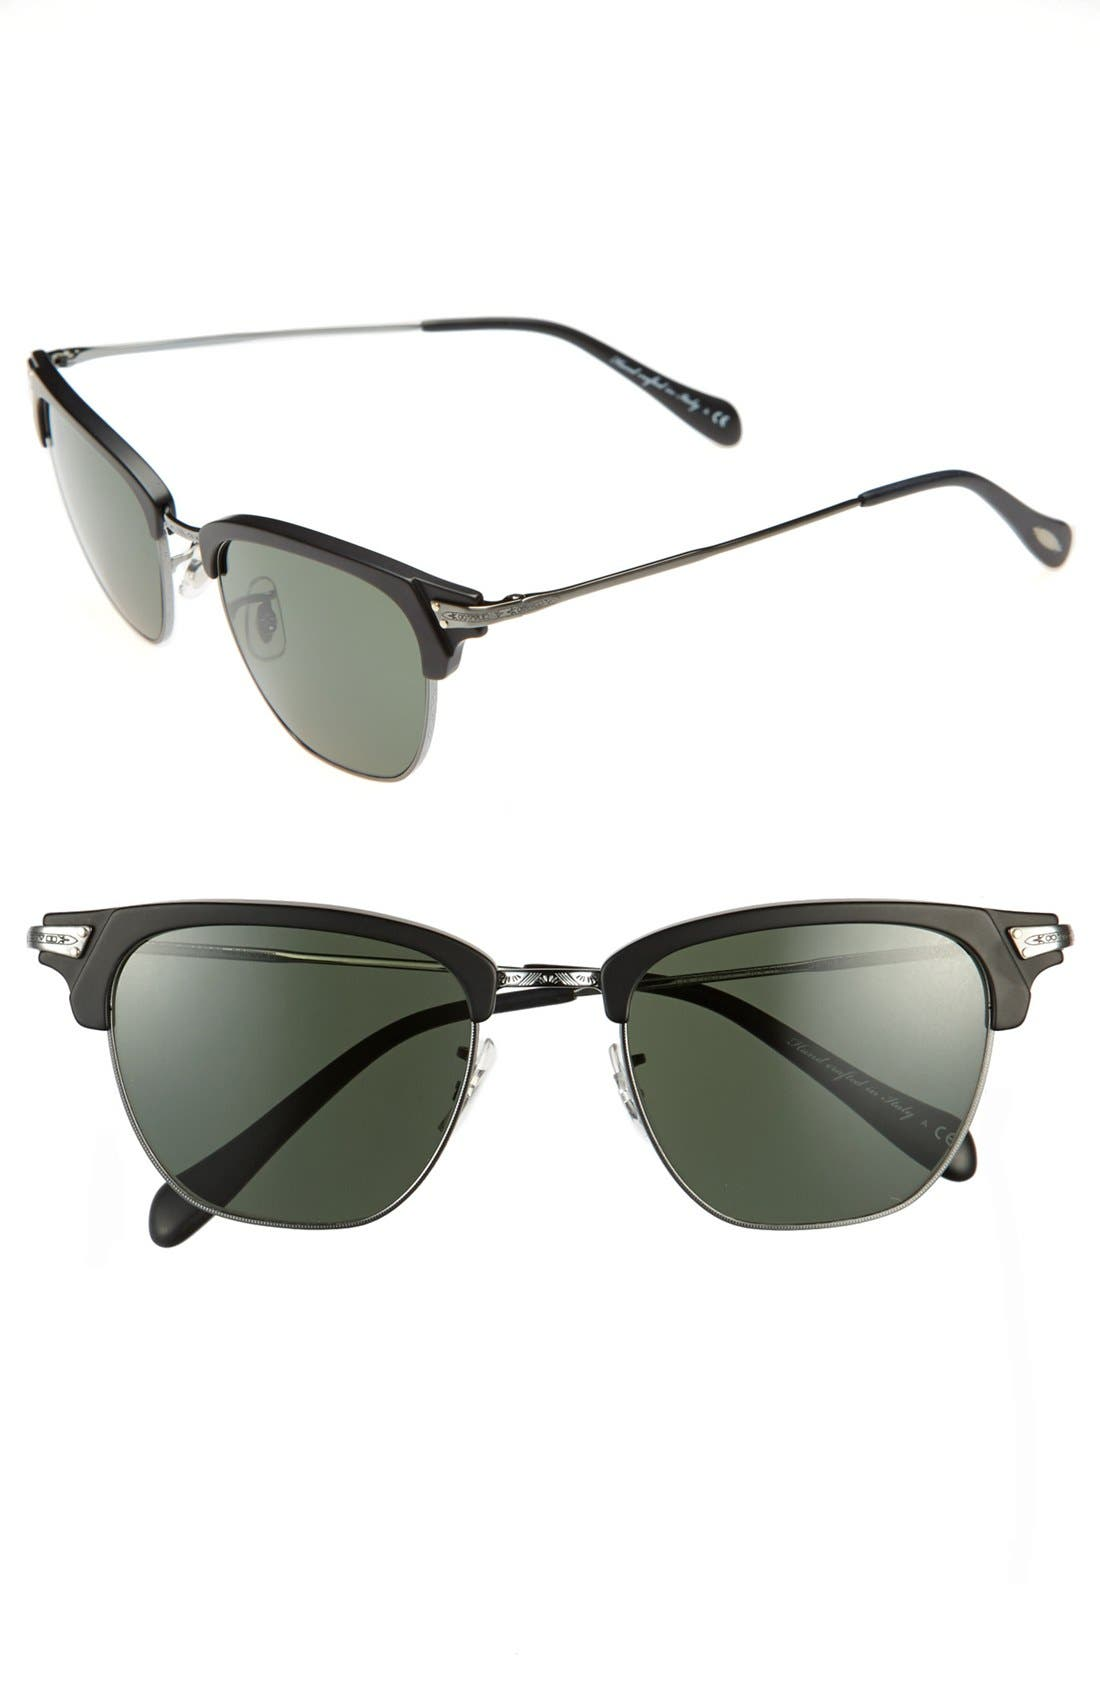 Main Image - Oliver Peoples 'Banks' 49mm Sunglasses